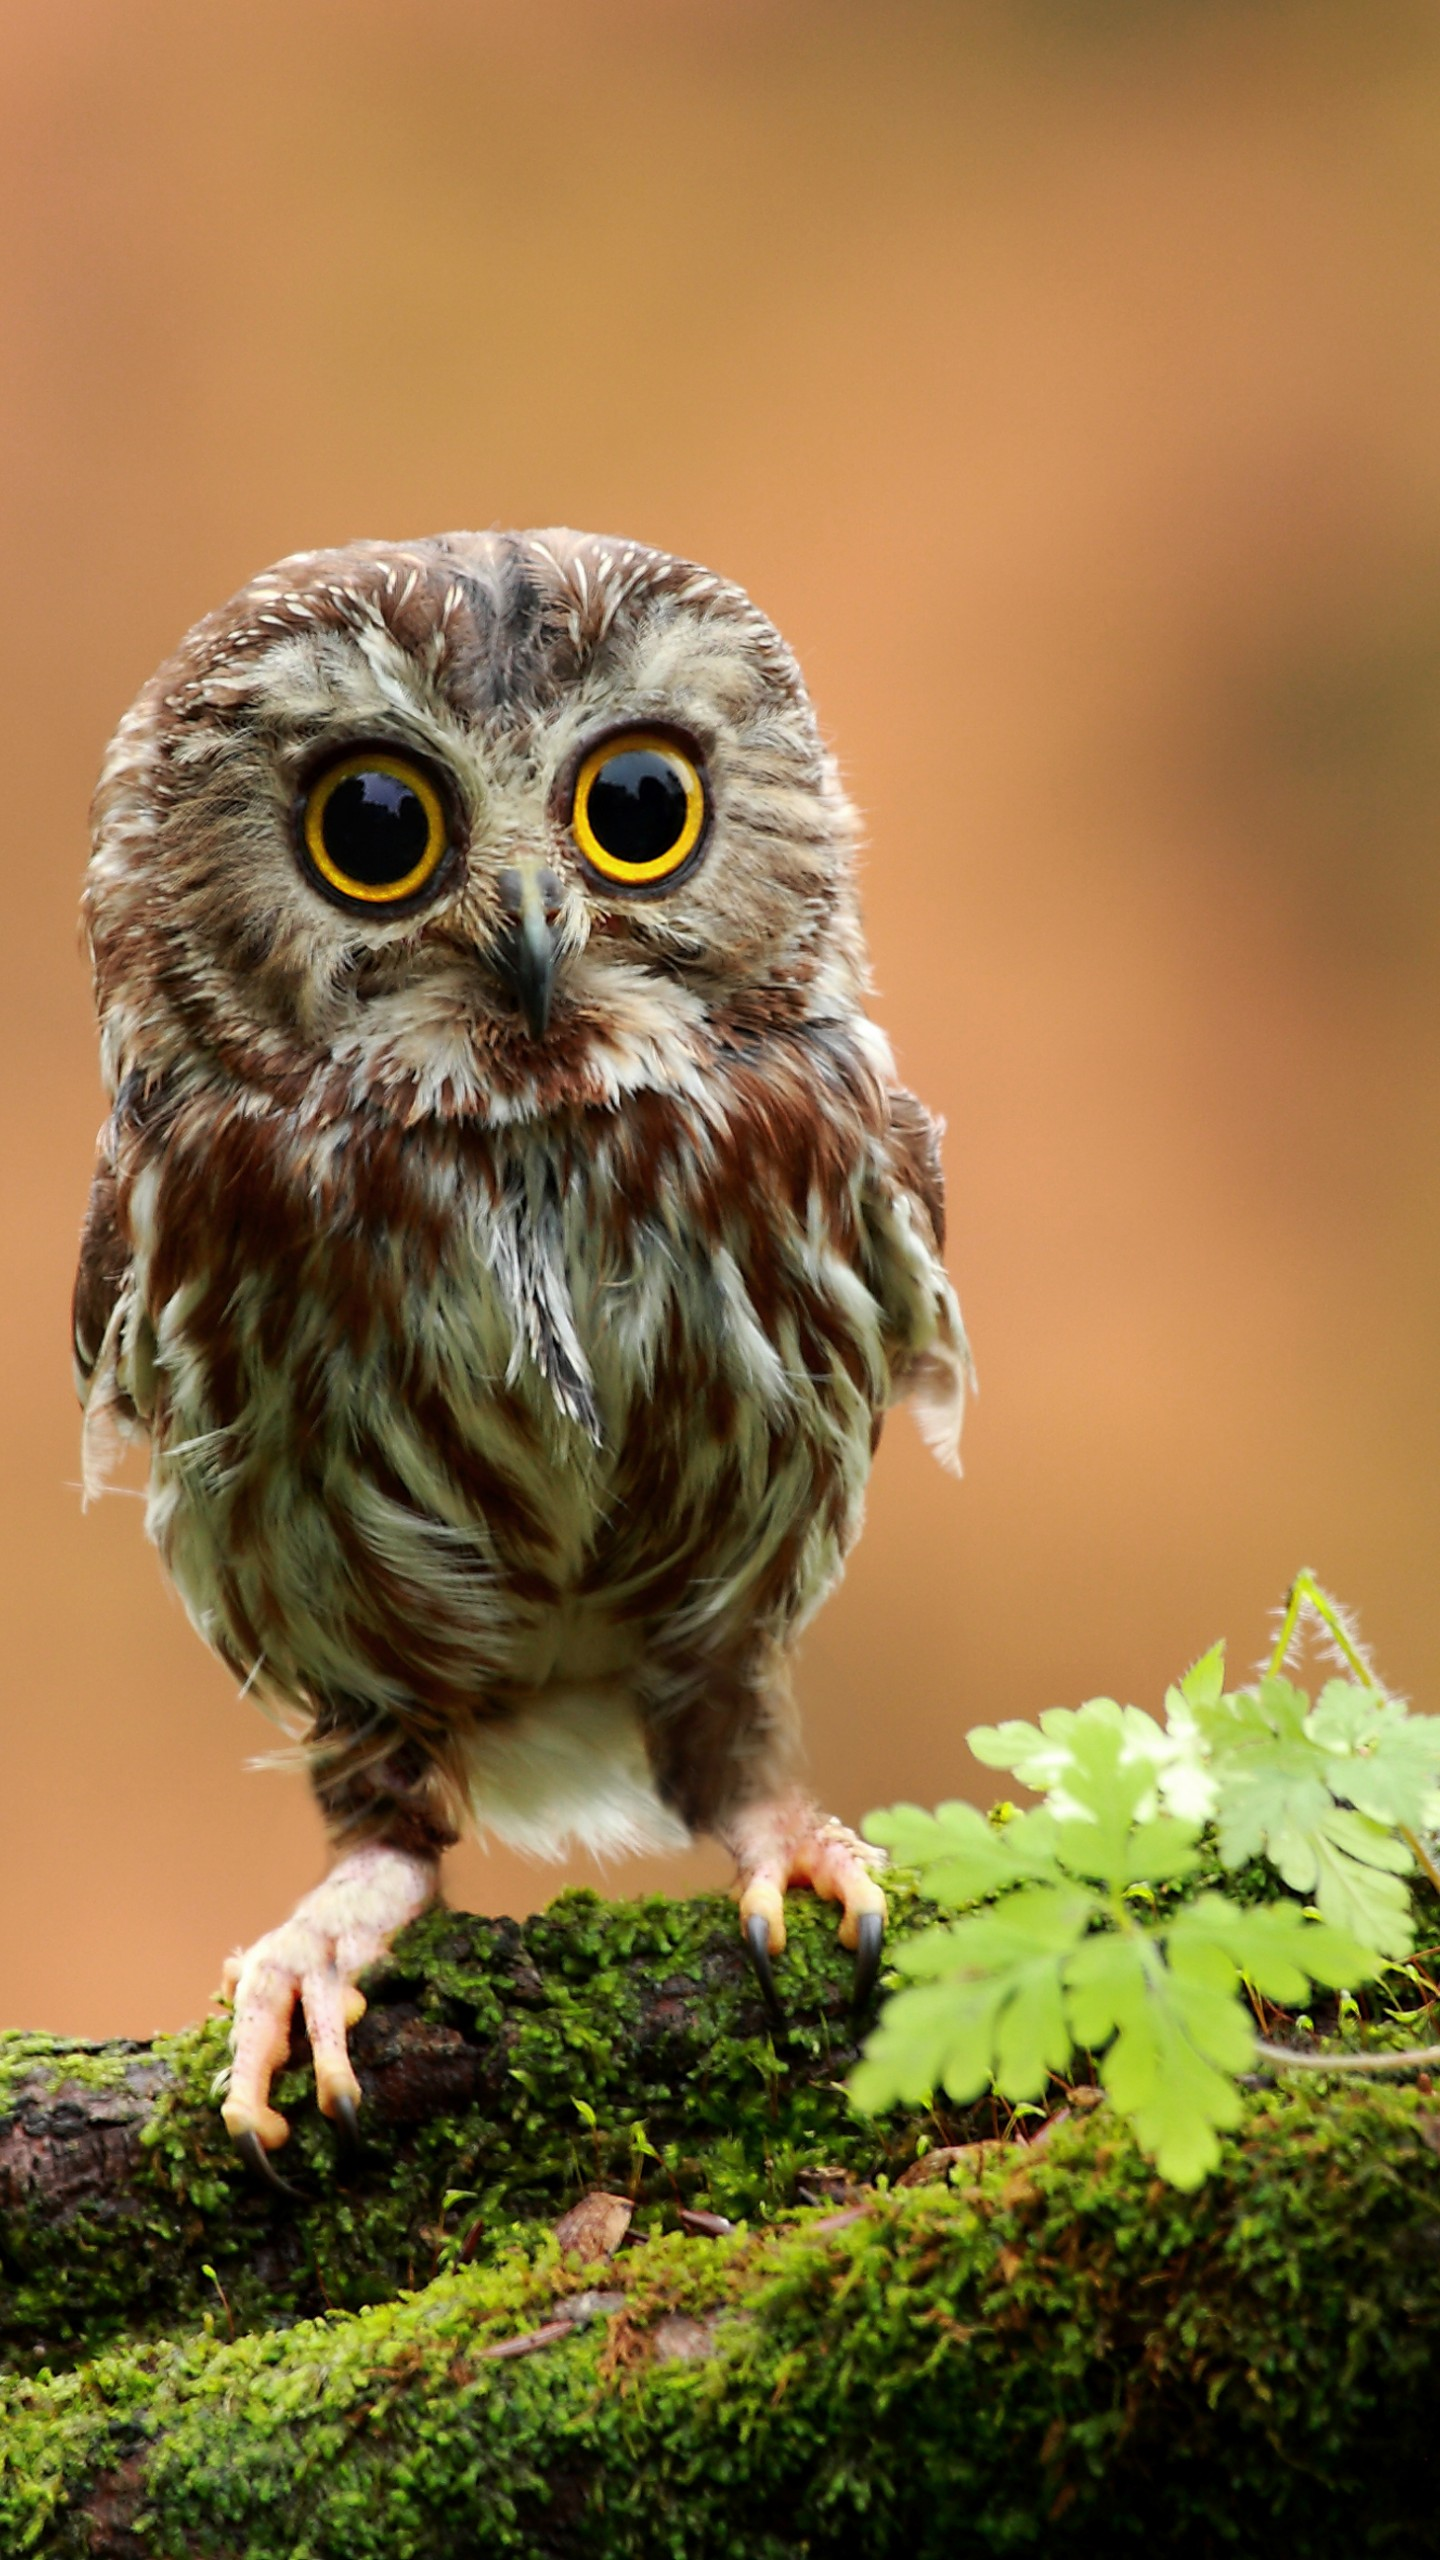 Wallpaper Owl Chicken Forest Eyes Animals 4086